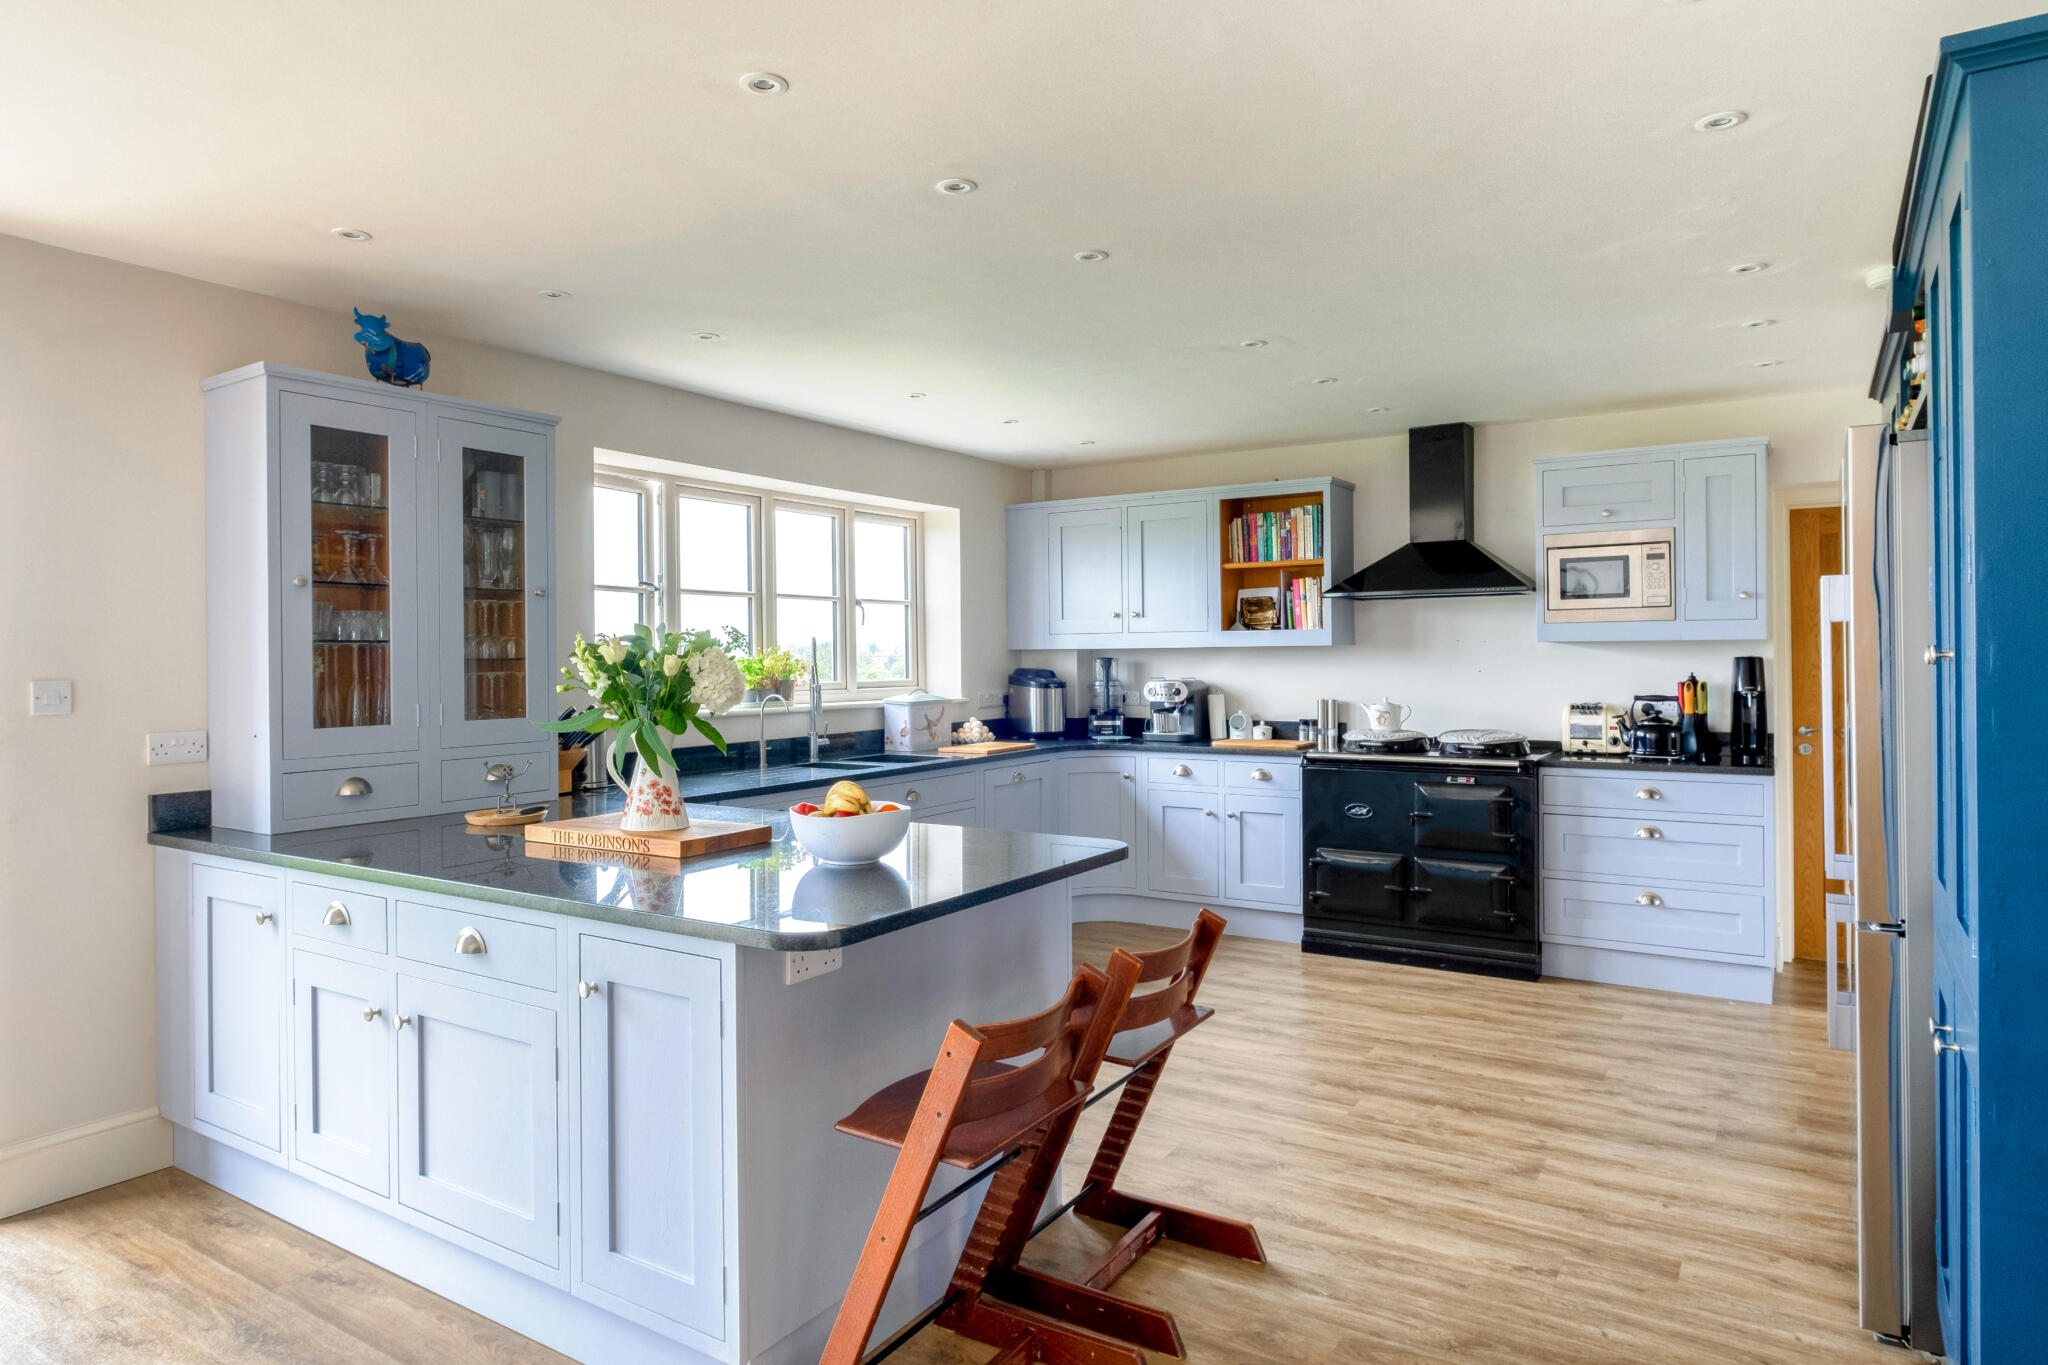 The Robinsons' Saved £60,000 By Choosing Used Kitchen Exchange